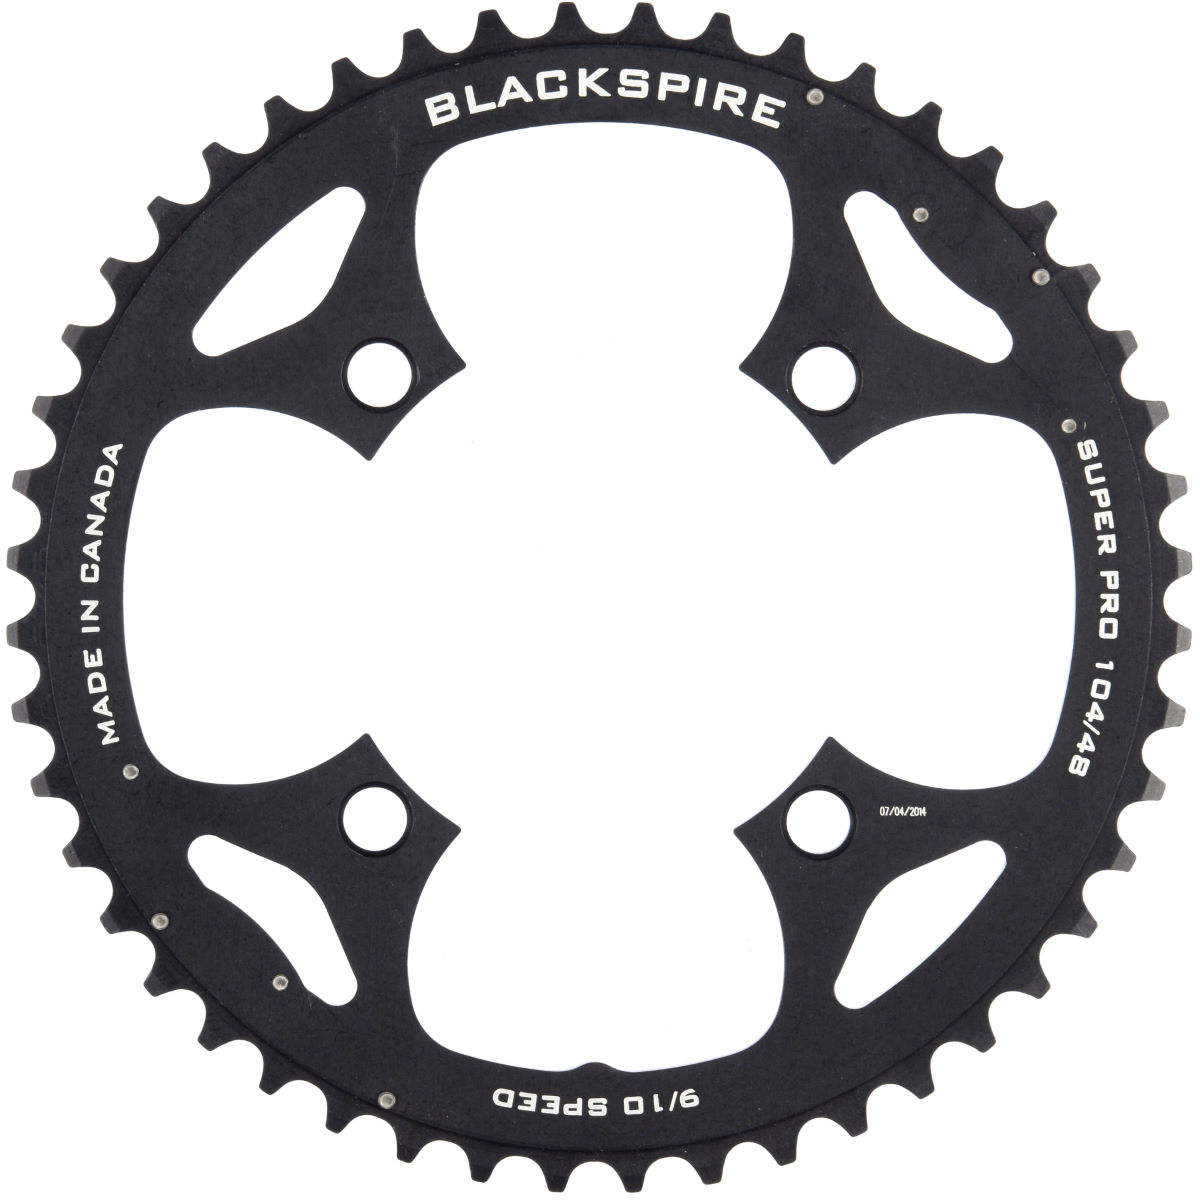 Blackspire Blackspire Super Pro Outer Ramped Chainring   Chain Rings